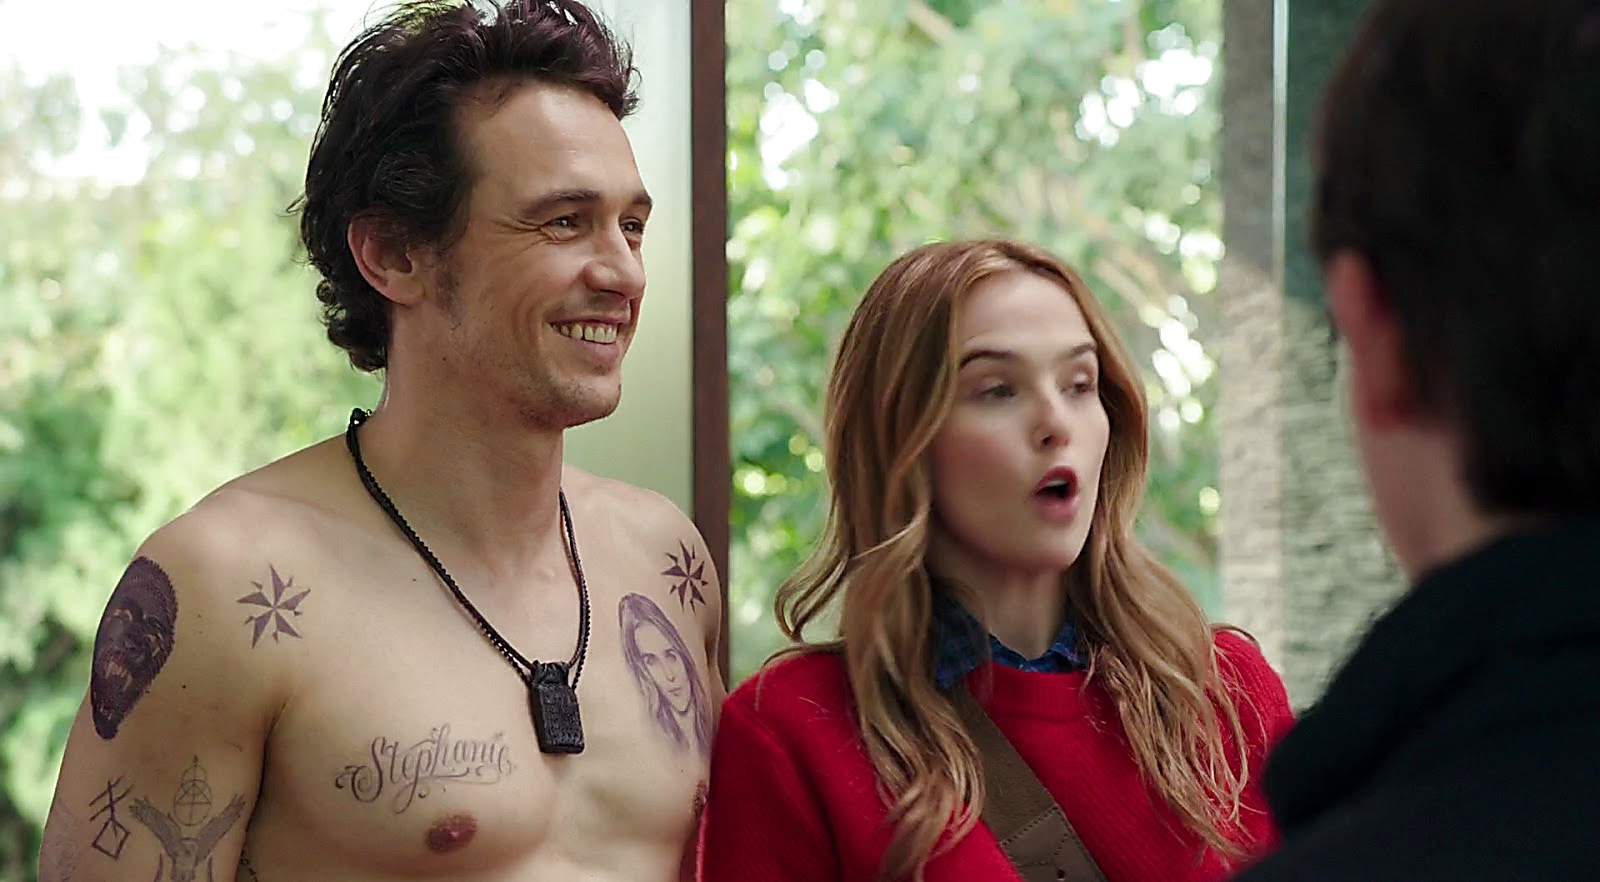 James Franco sexy shirtless scene March 14, 2017, 2pm